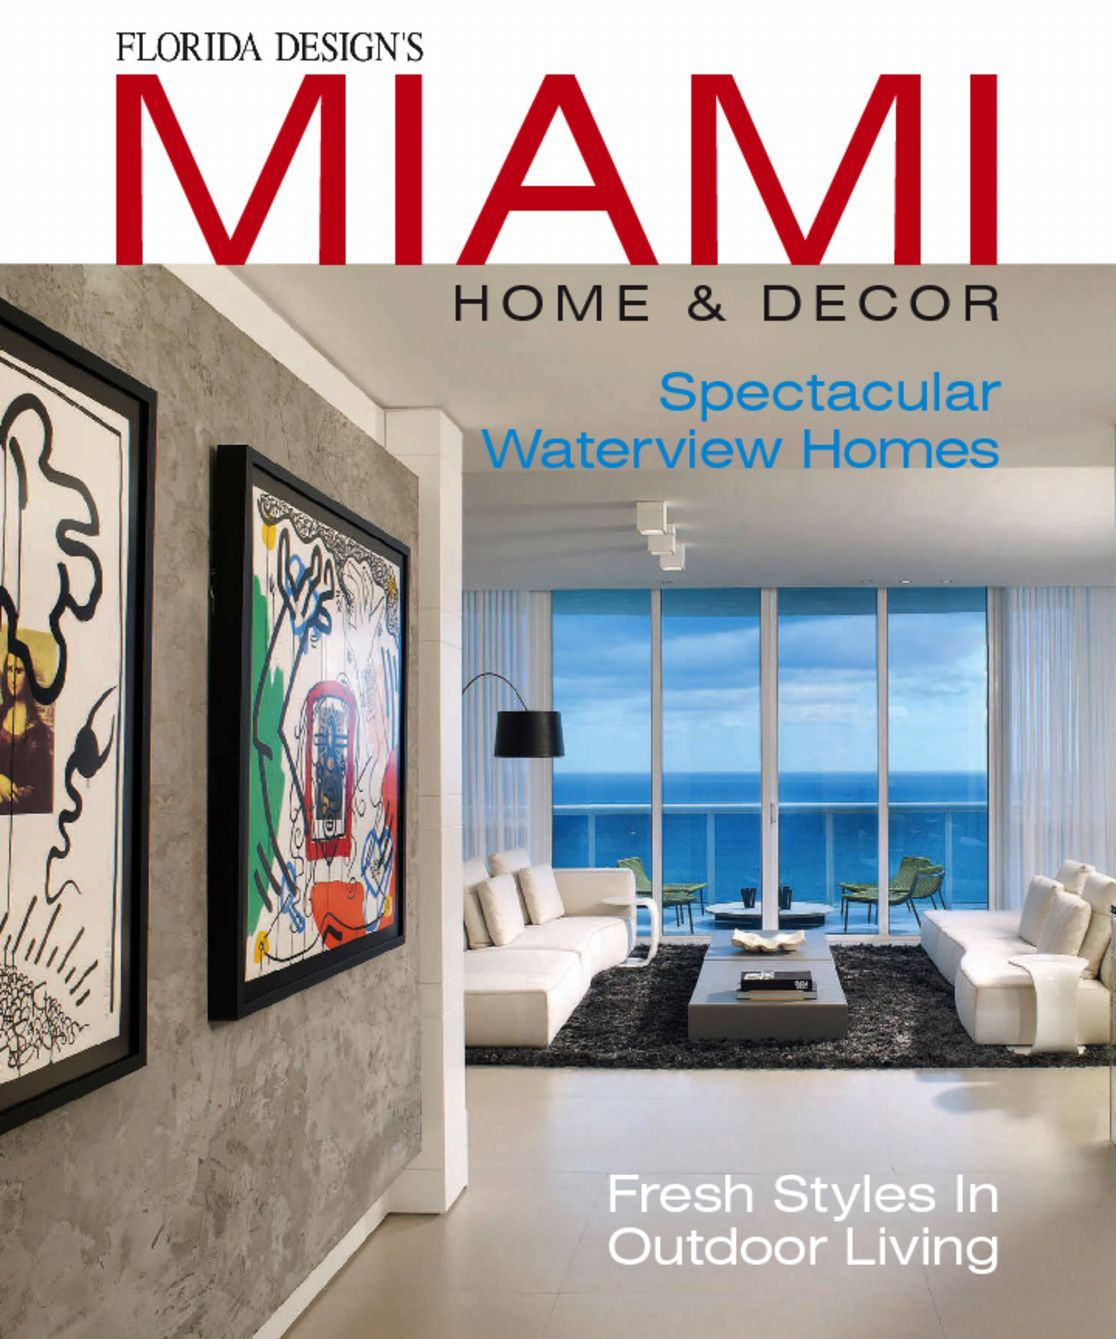 home decor stores in miami florida design s miami home amp decor digital magazine 12531